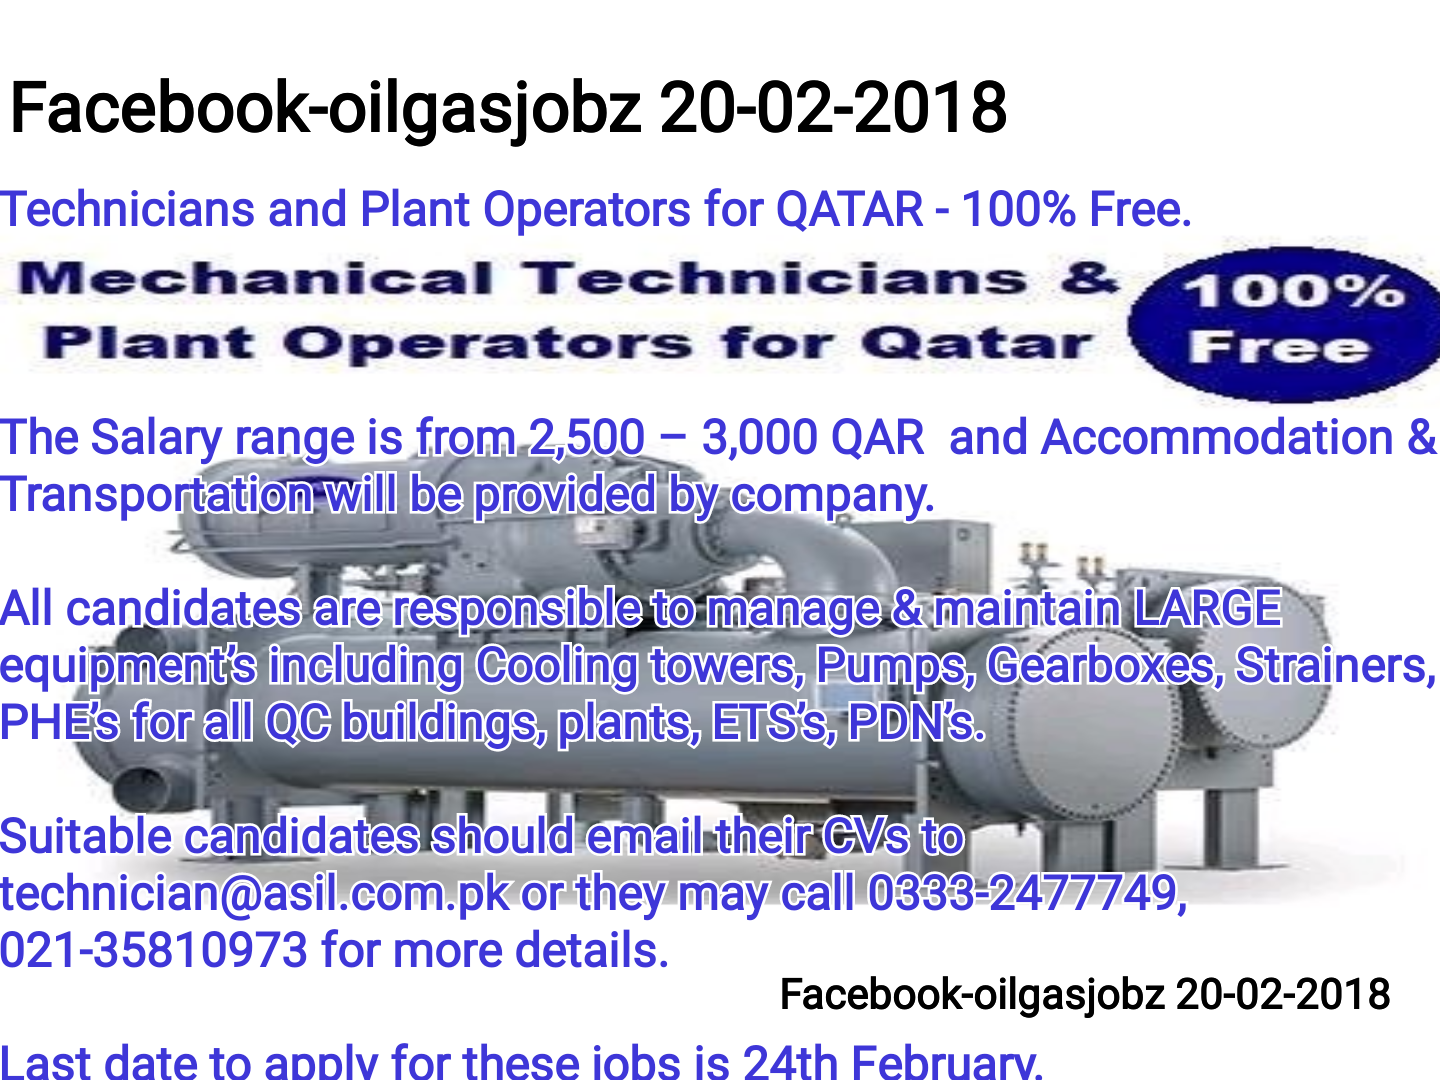 Oil and Gas Jobs: Technicians and Plant Operators for Qatar